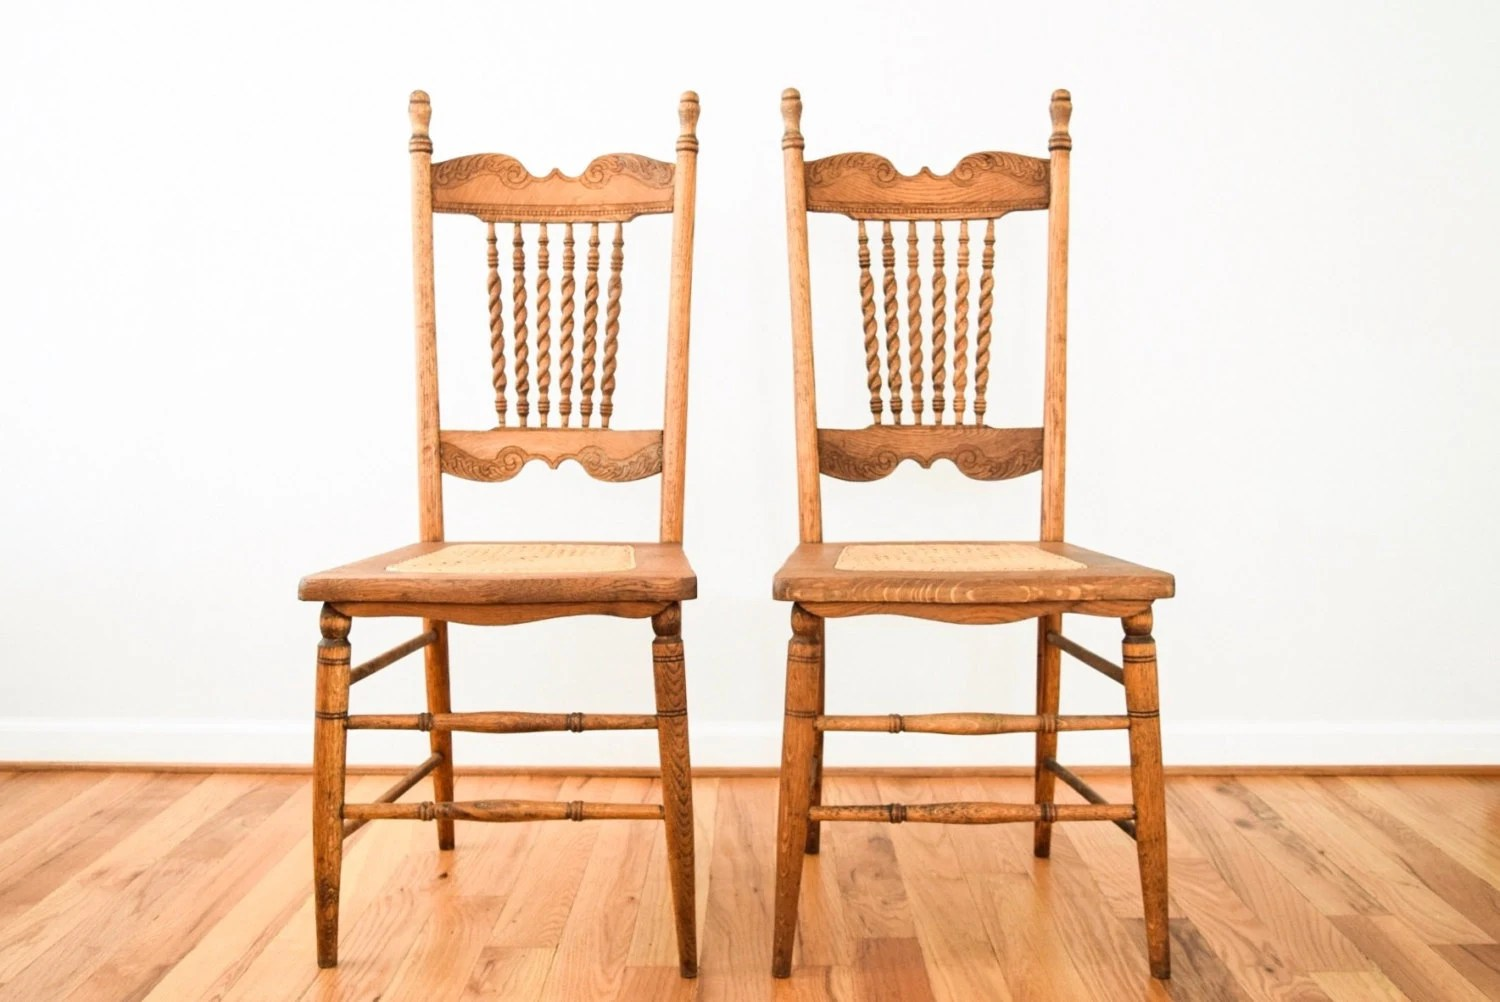 Cane Dining Chairs Antique Wood Chairs Antique Dining Chairs Cane Chairs